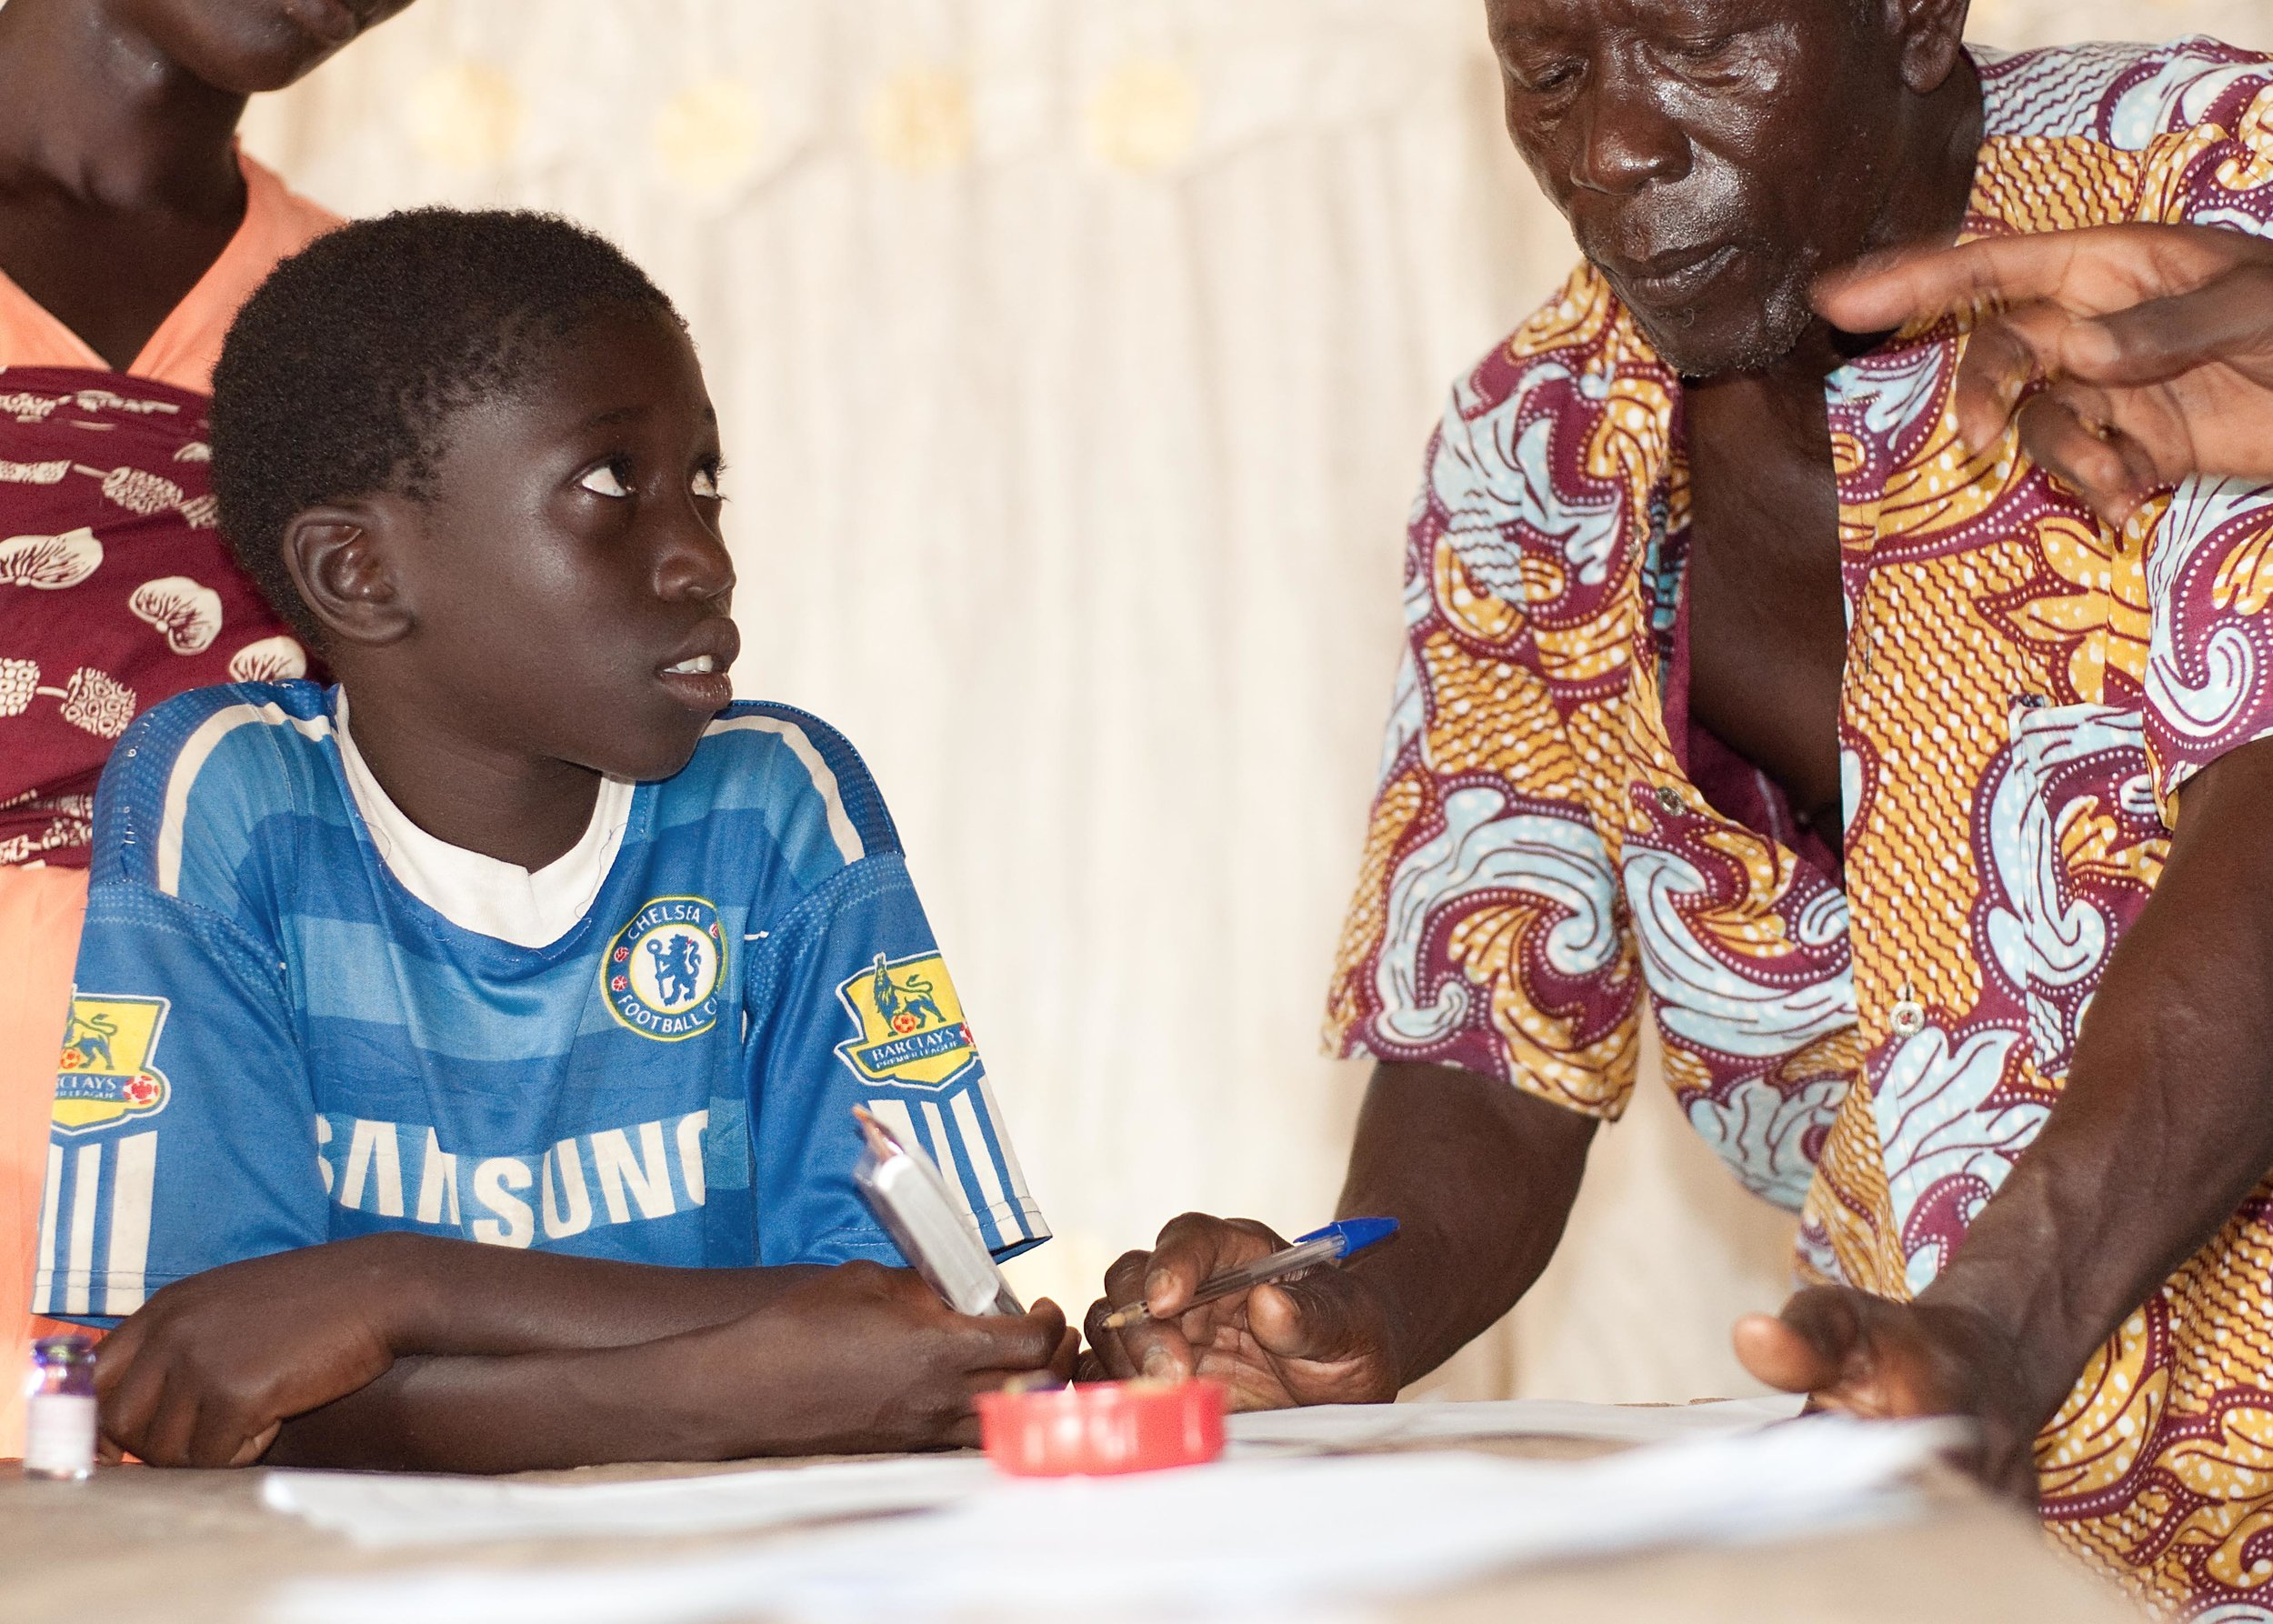 #3: January 2012 - Signed first partnership with village of Adovepke